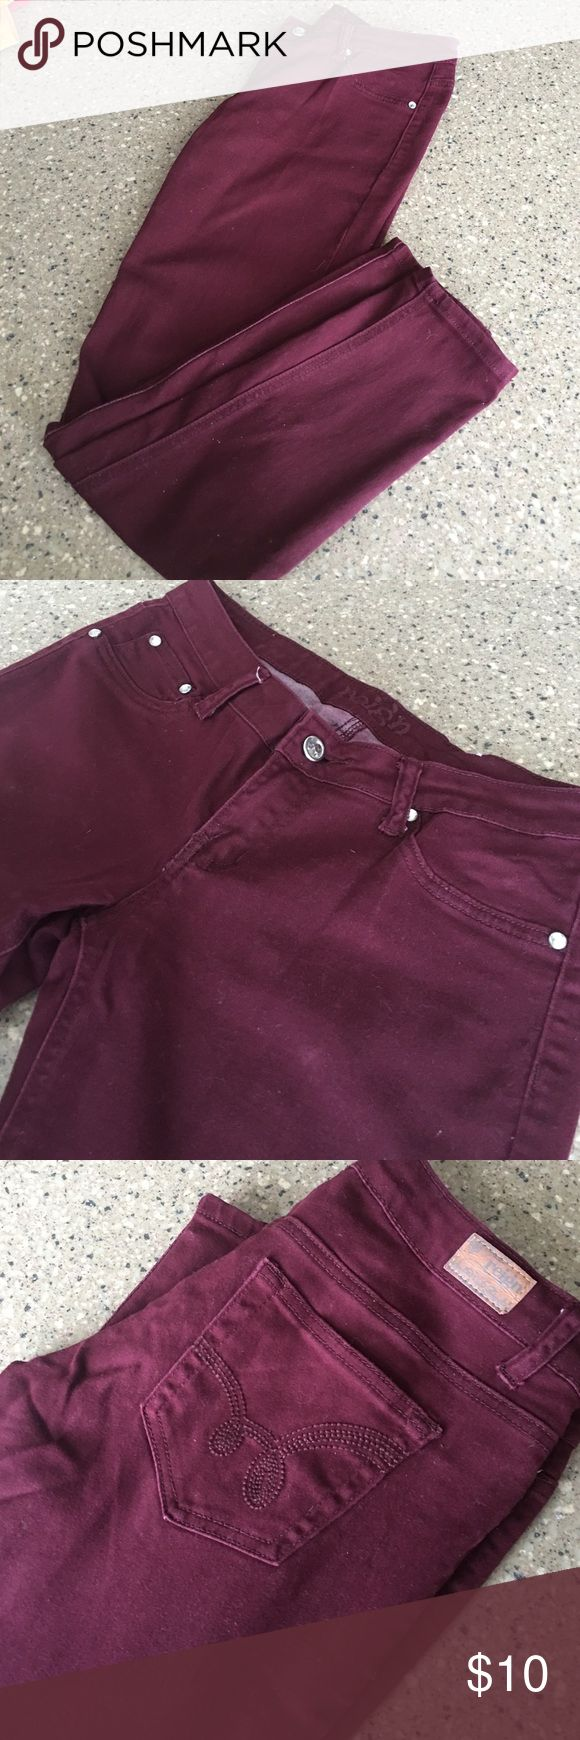 Reign maroon skinny jeans! Maroon Reign brand skinny jeans with diamond stud buttons Reign Jeans